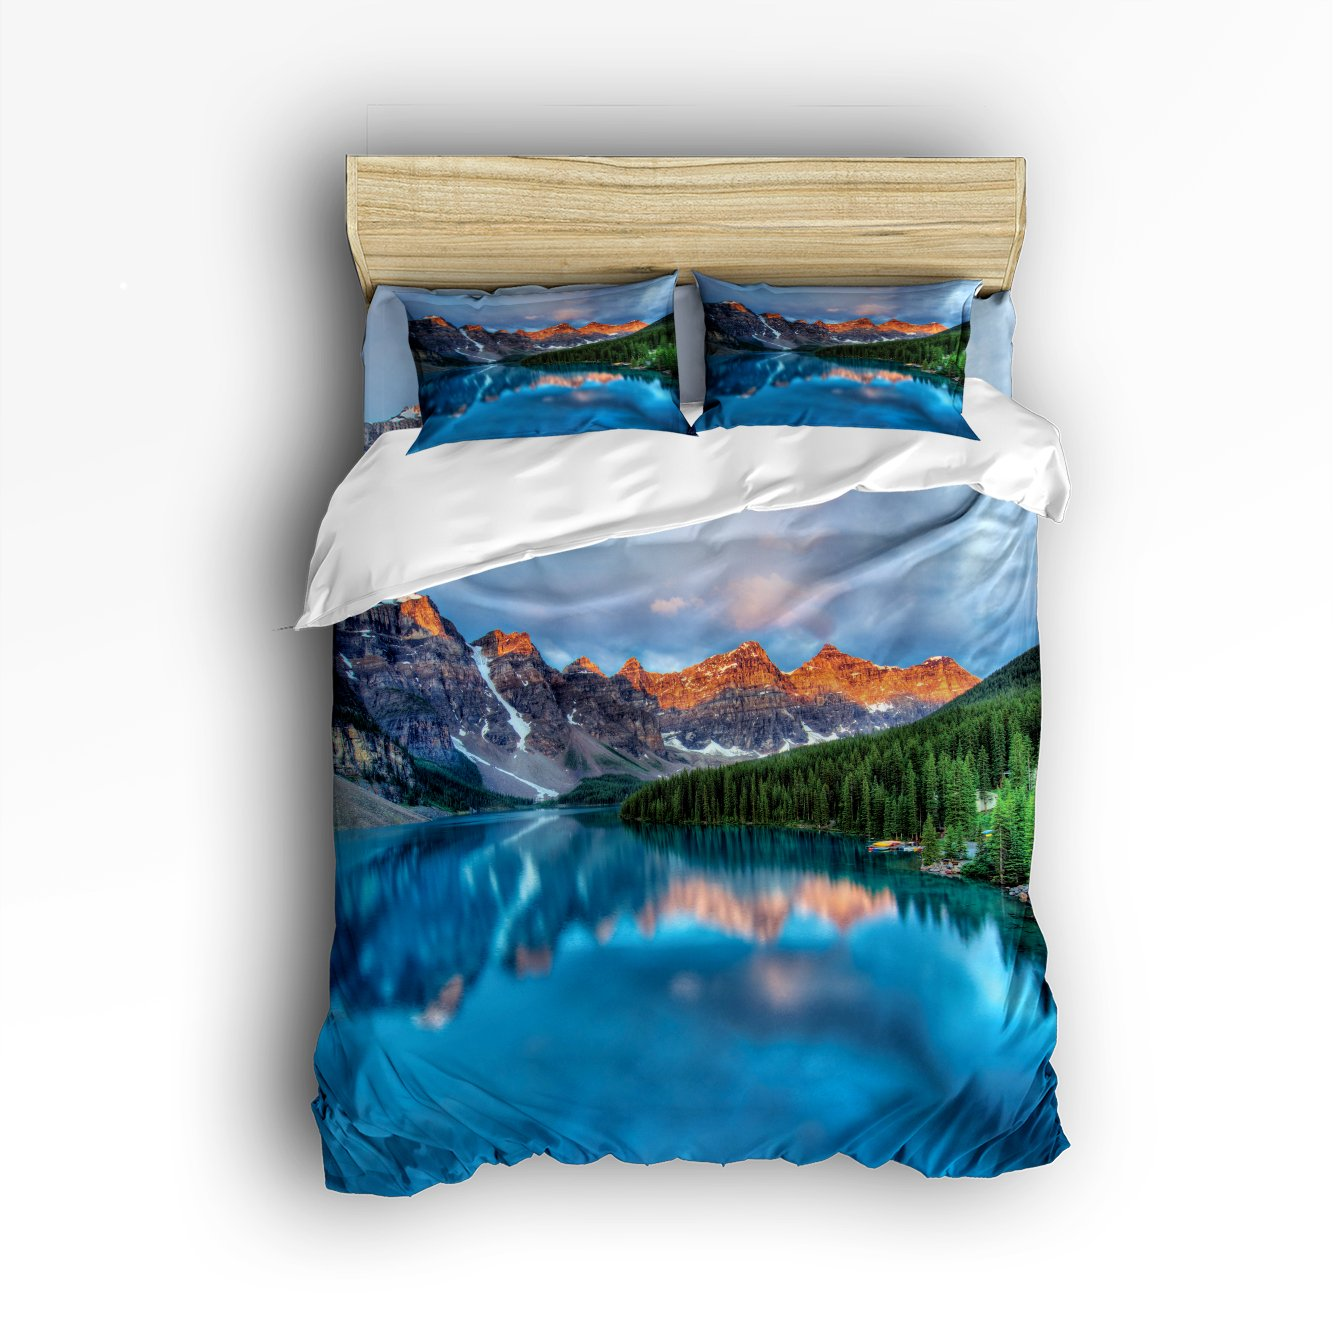 Libaoge 4 Piece Bed Sheets Set, Mountain Lake View Sunny Day Nature Print, 1 Flat Sheet 1 Duvet Cover and 2 Pillow Cases by Libaoge